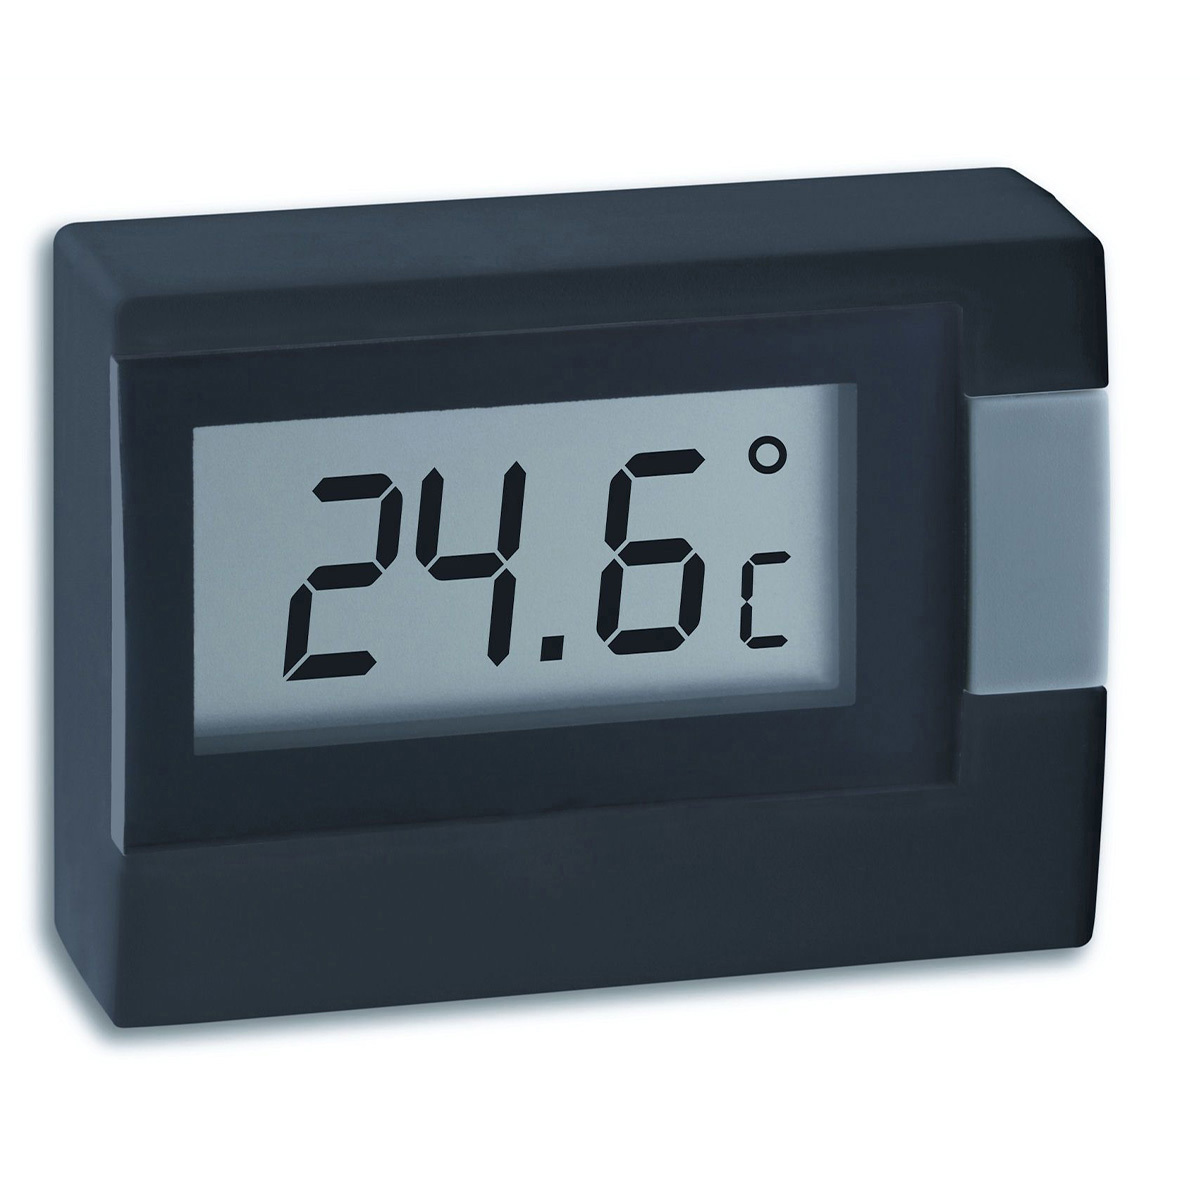 30-2017-01-digitales-thermometer-1200x1200px.jpg